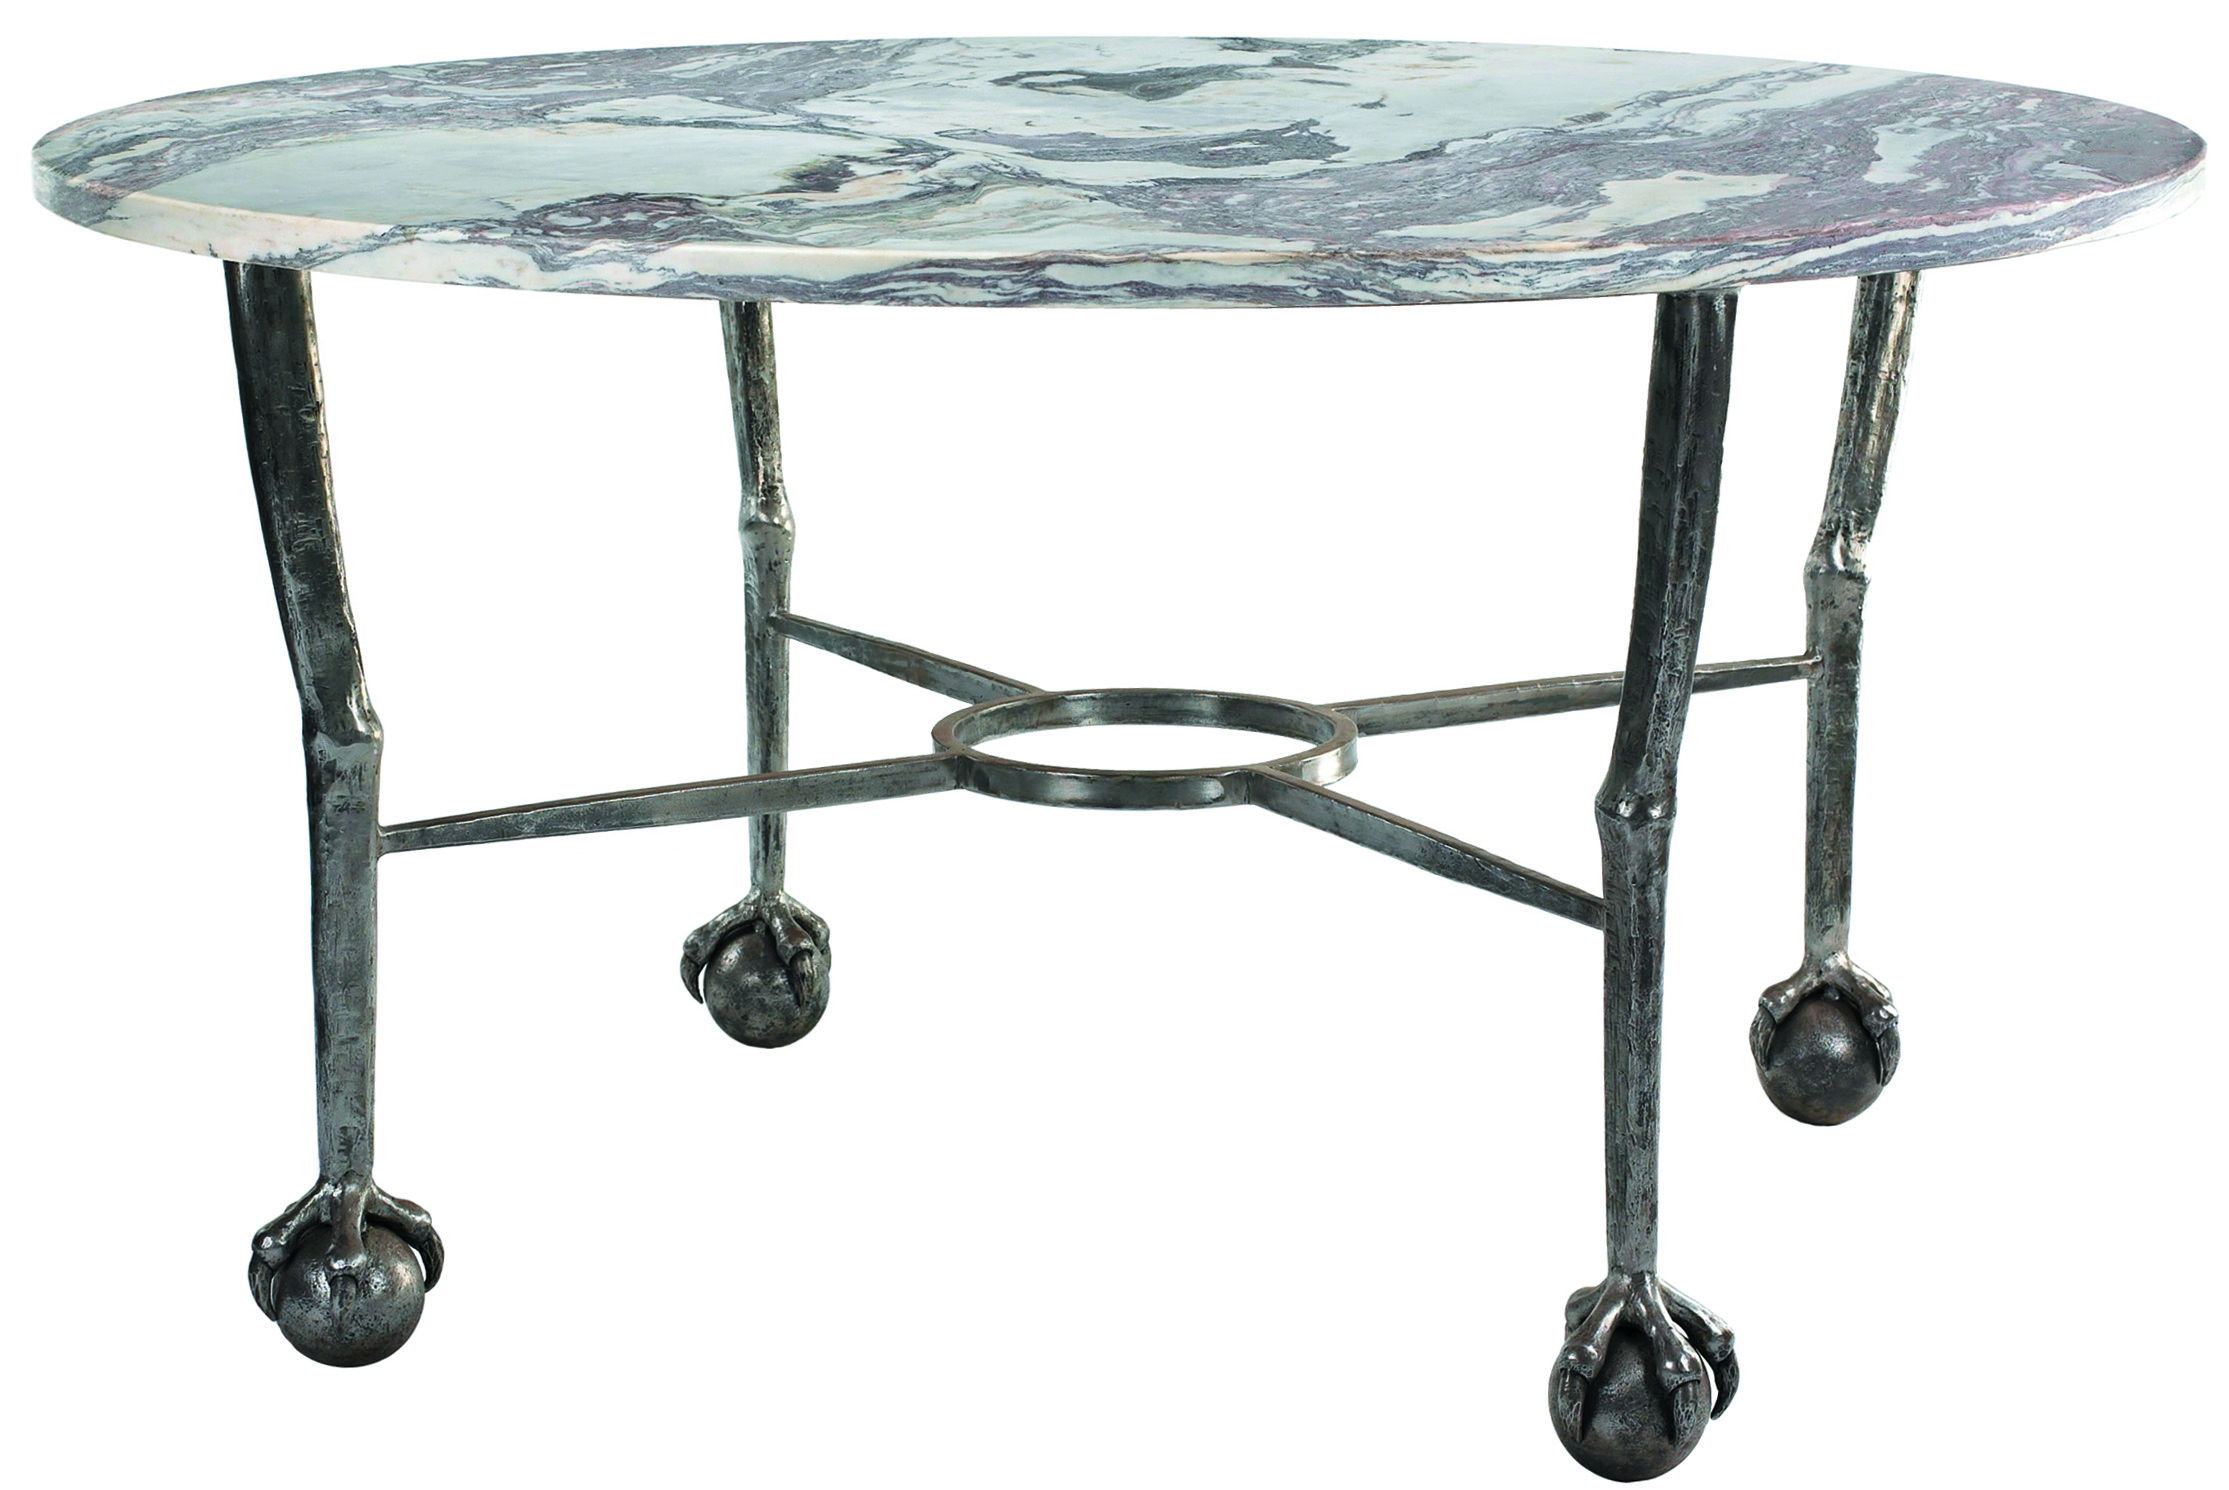 Ball and Claw Dining Table Richard Taylor DesignsRichard Taylor